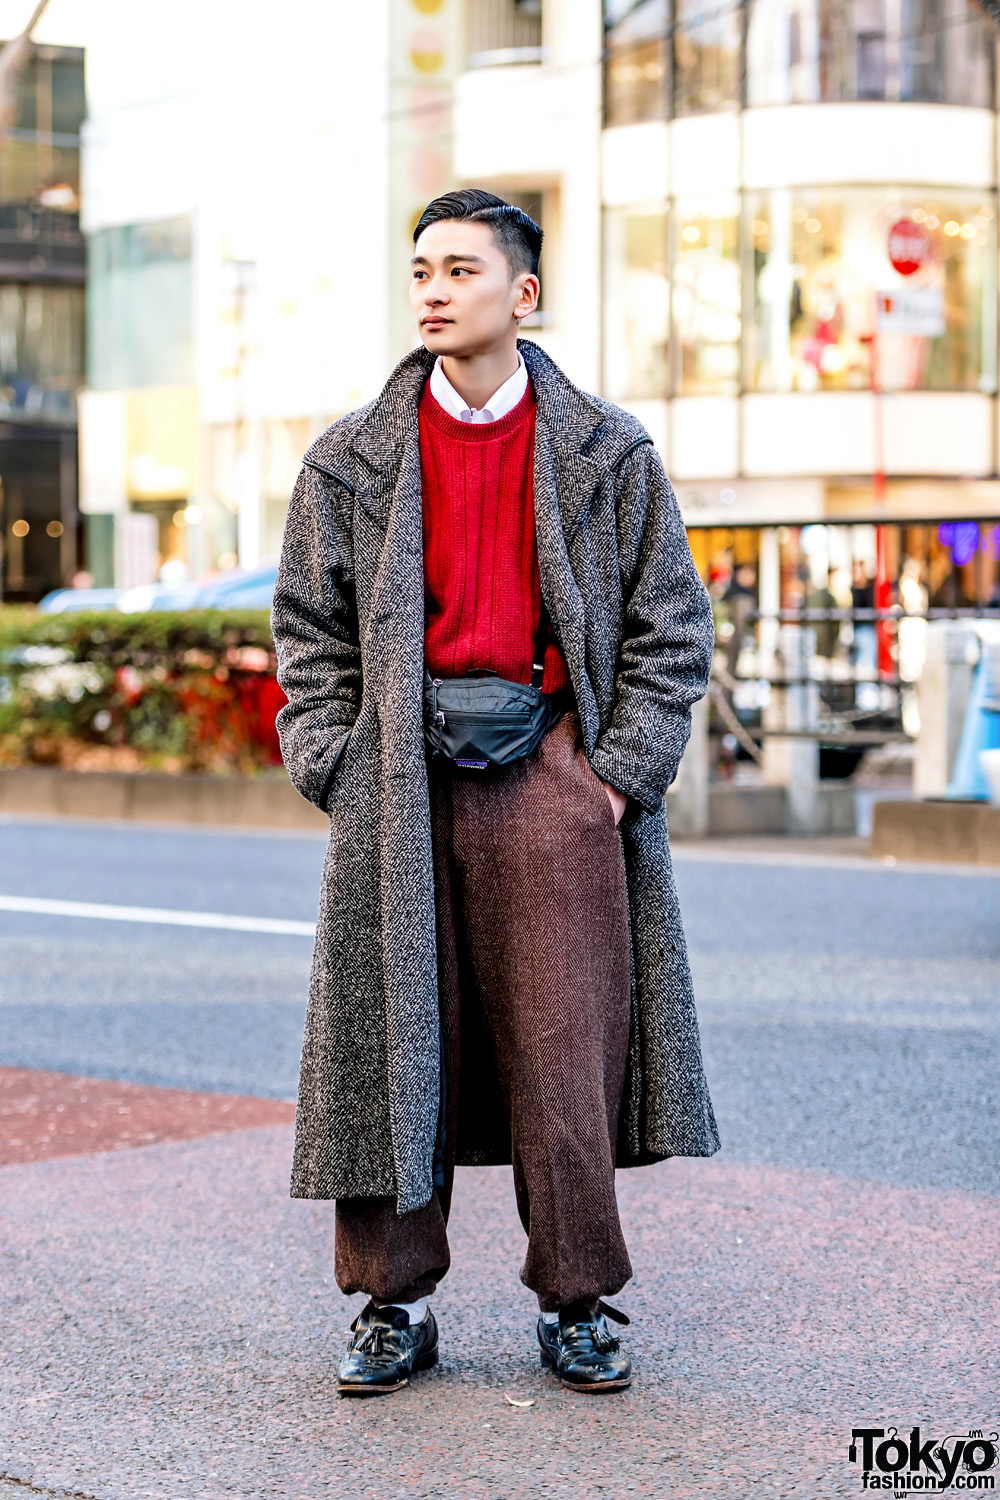 Retro Japanese Menswear Street Style In Harajuku W Wool Coat